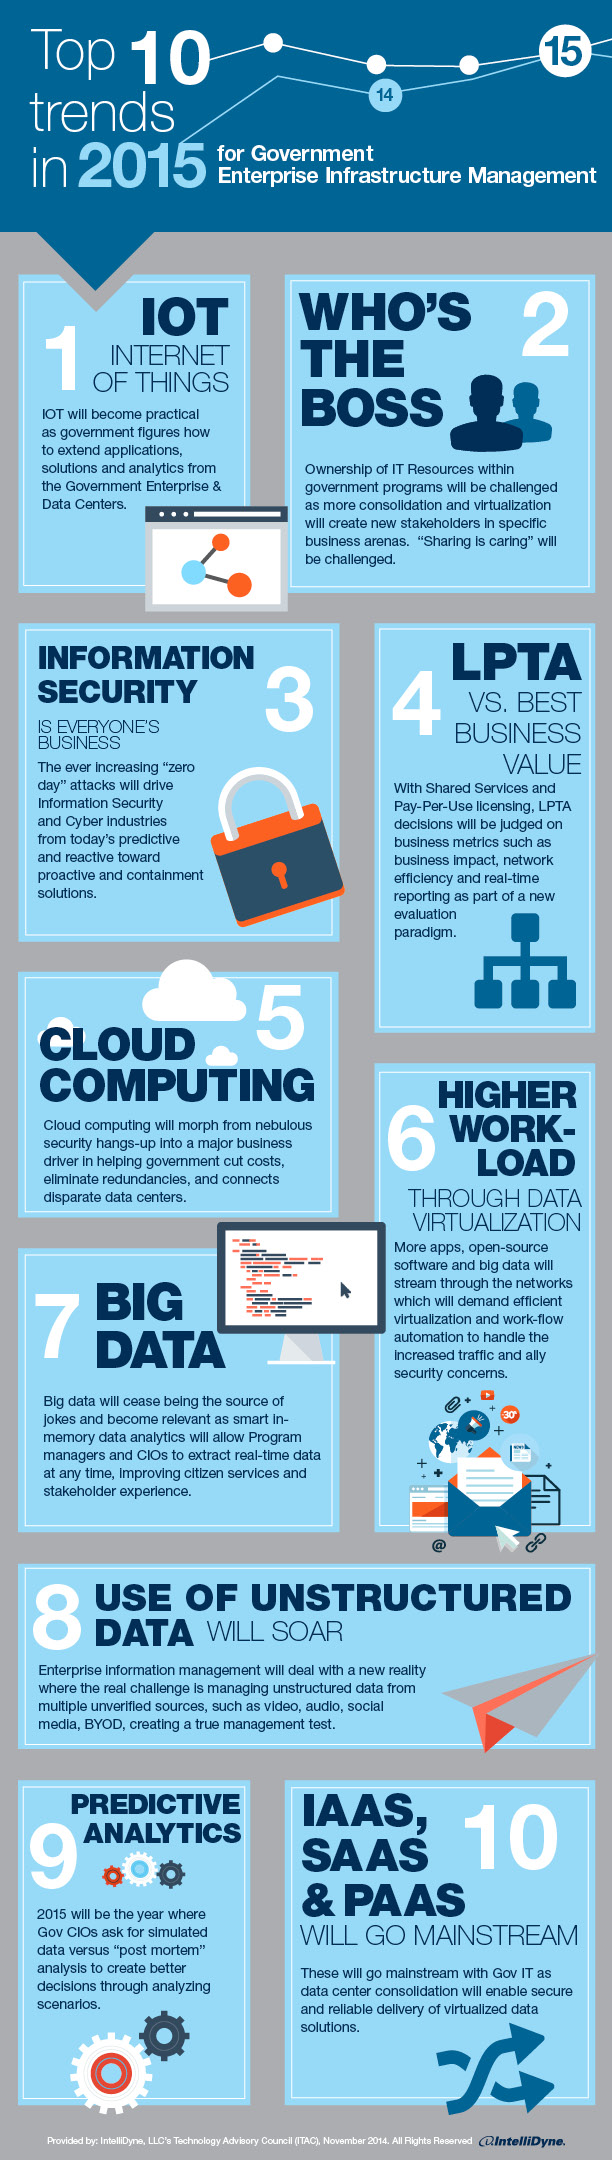 Intellidyne Picks Top 10 Tech Trends Washington Technology Digital Marketing Infographics Infographic Marketing Innovation Management